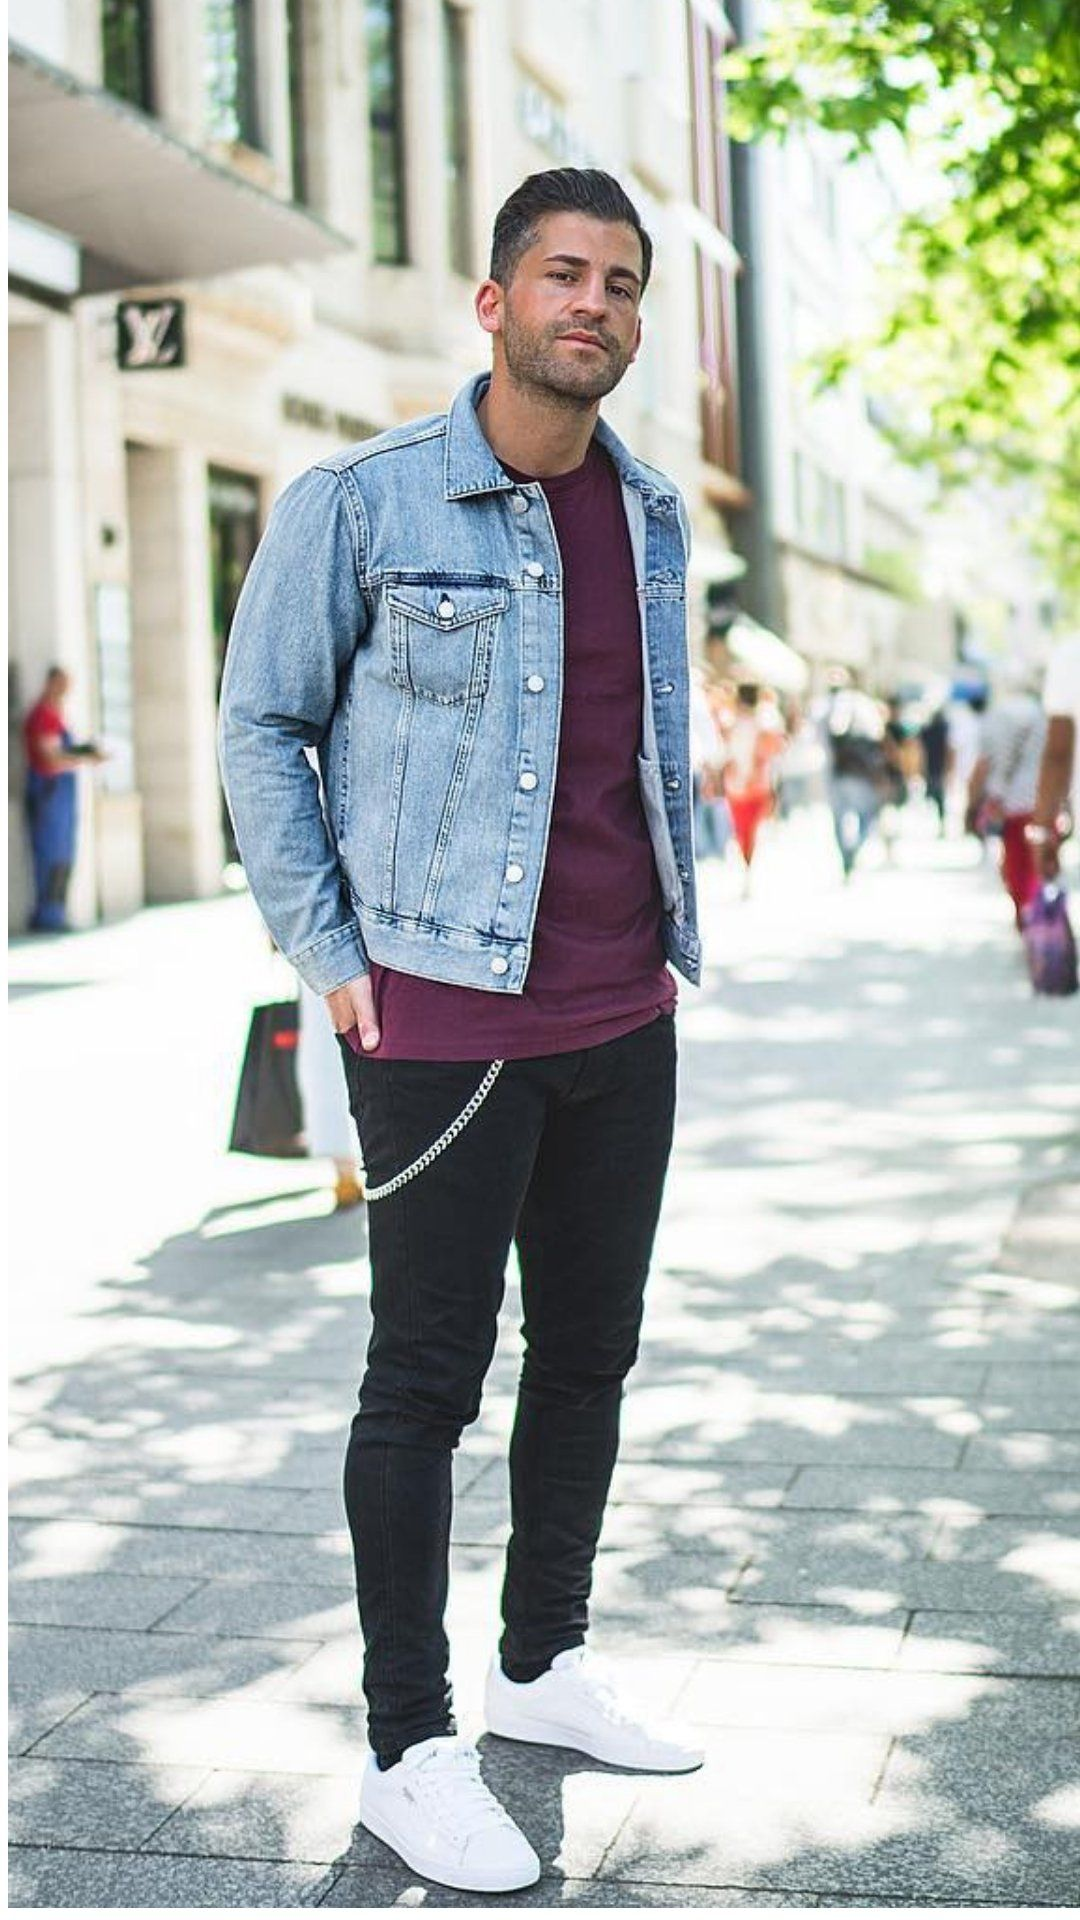 5 Epic Outfits We Bookmarked From This Celeb S Instagram Account Jean Jacket Outfits Men Denim Jacket Men Outfit Blue Jeans Outfit Men [ 1920 x 1080 Pixel ]